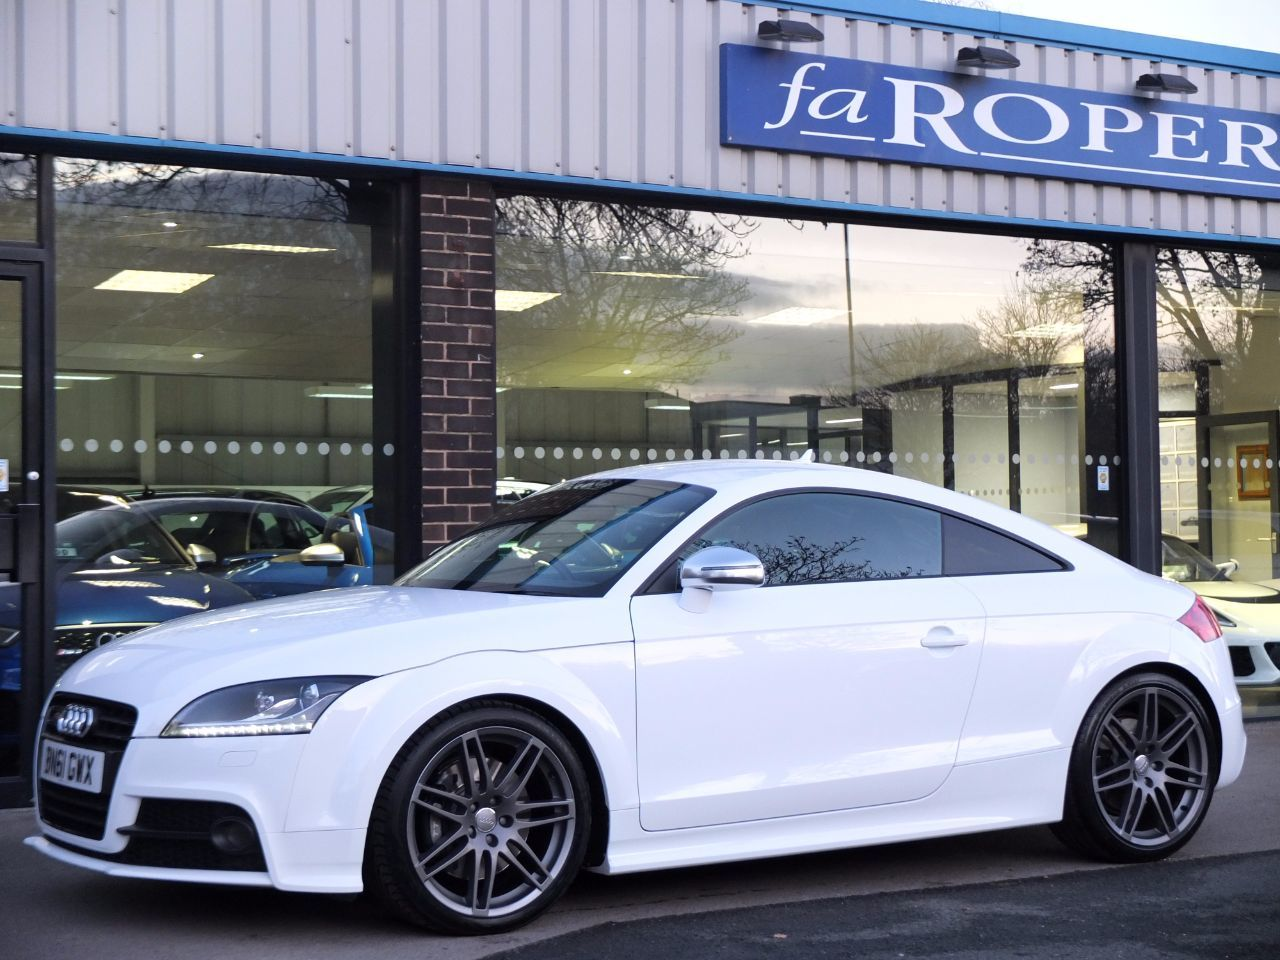 Audi TT 2.0 TTS Coupe quattro Black Edition S tronic 272ps Coupe Petrol Ibis White